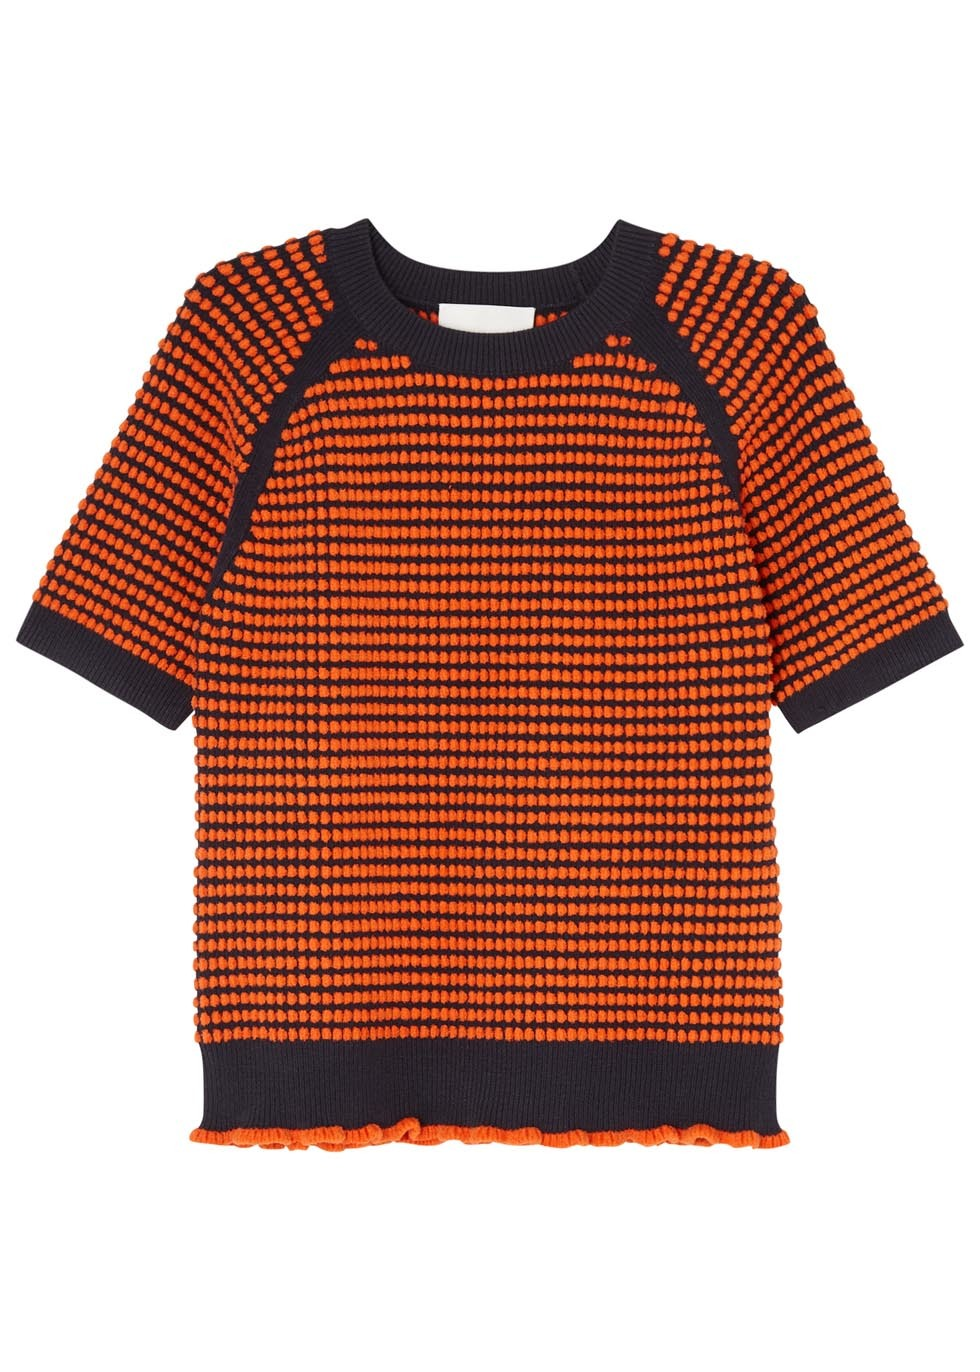 Navy And Orange Textured Knit Top - pattern: horizontal stripes; secondary colour: navy; predominant colour: bright orange; occasions: casual; length: standard; style: top; fibres: cotton - mix; fit: body skimming; neckline: crew; sleeve length: short sleeve; sleeve style: standard; texture group: knits/crochet; pattern type: fabric; multicoloured: multicoloured; season: s/s 2016; wardrobe: highlight